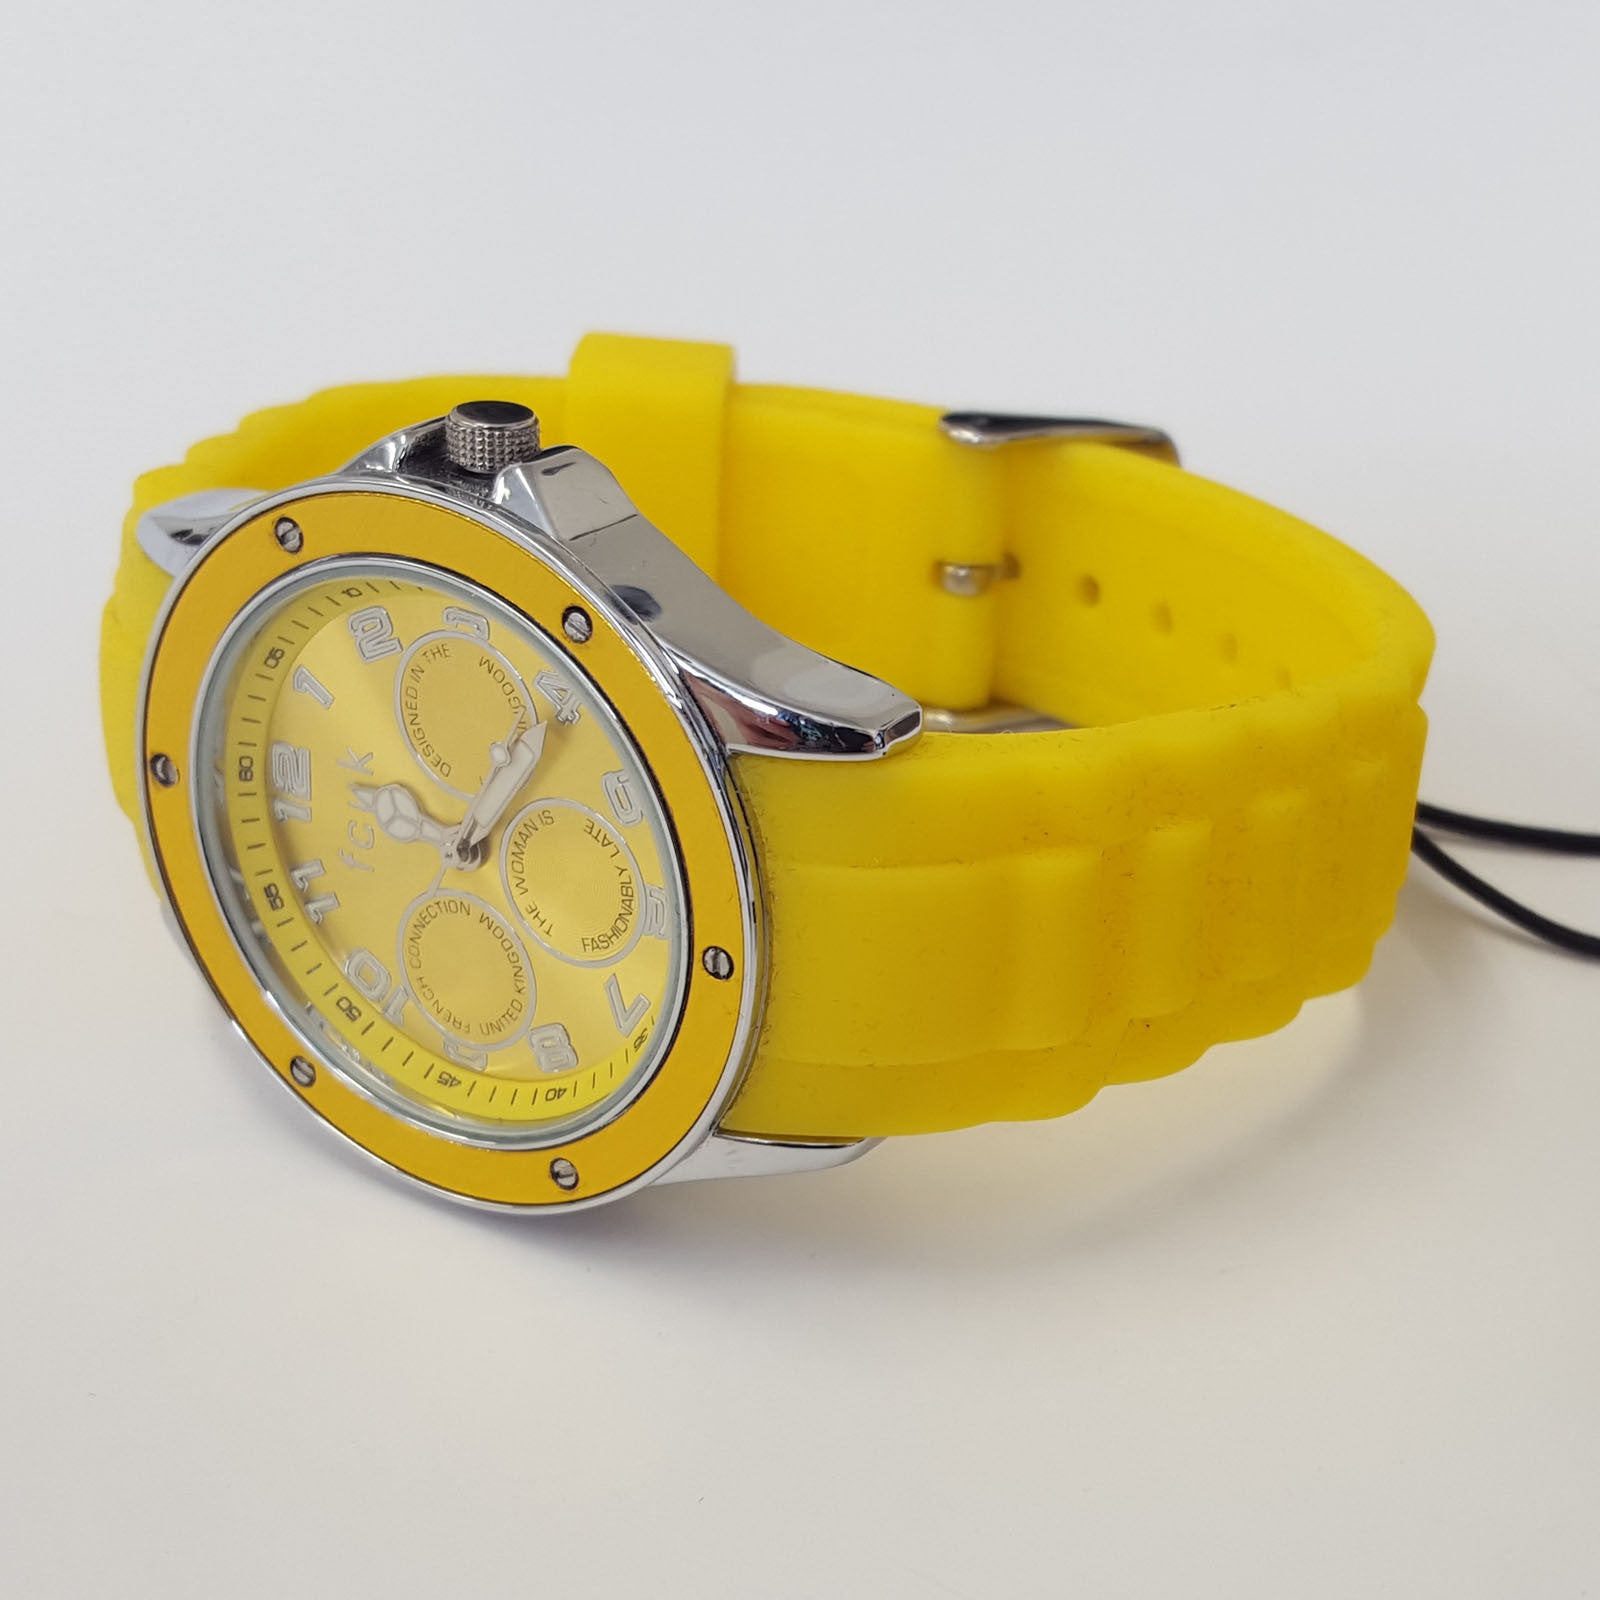 ladies trendy yellow silicone strap watch by french connection ladies trendy yellow silicone strap watch by french connection fcuk fc1102yy